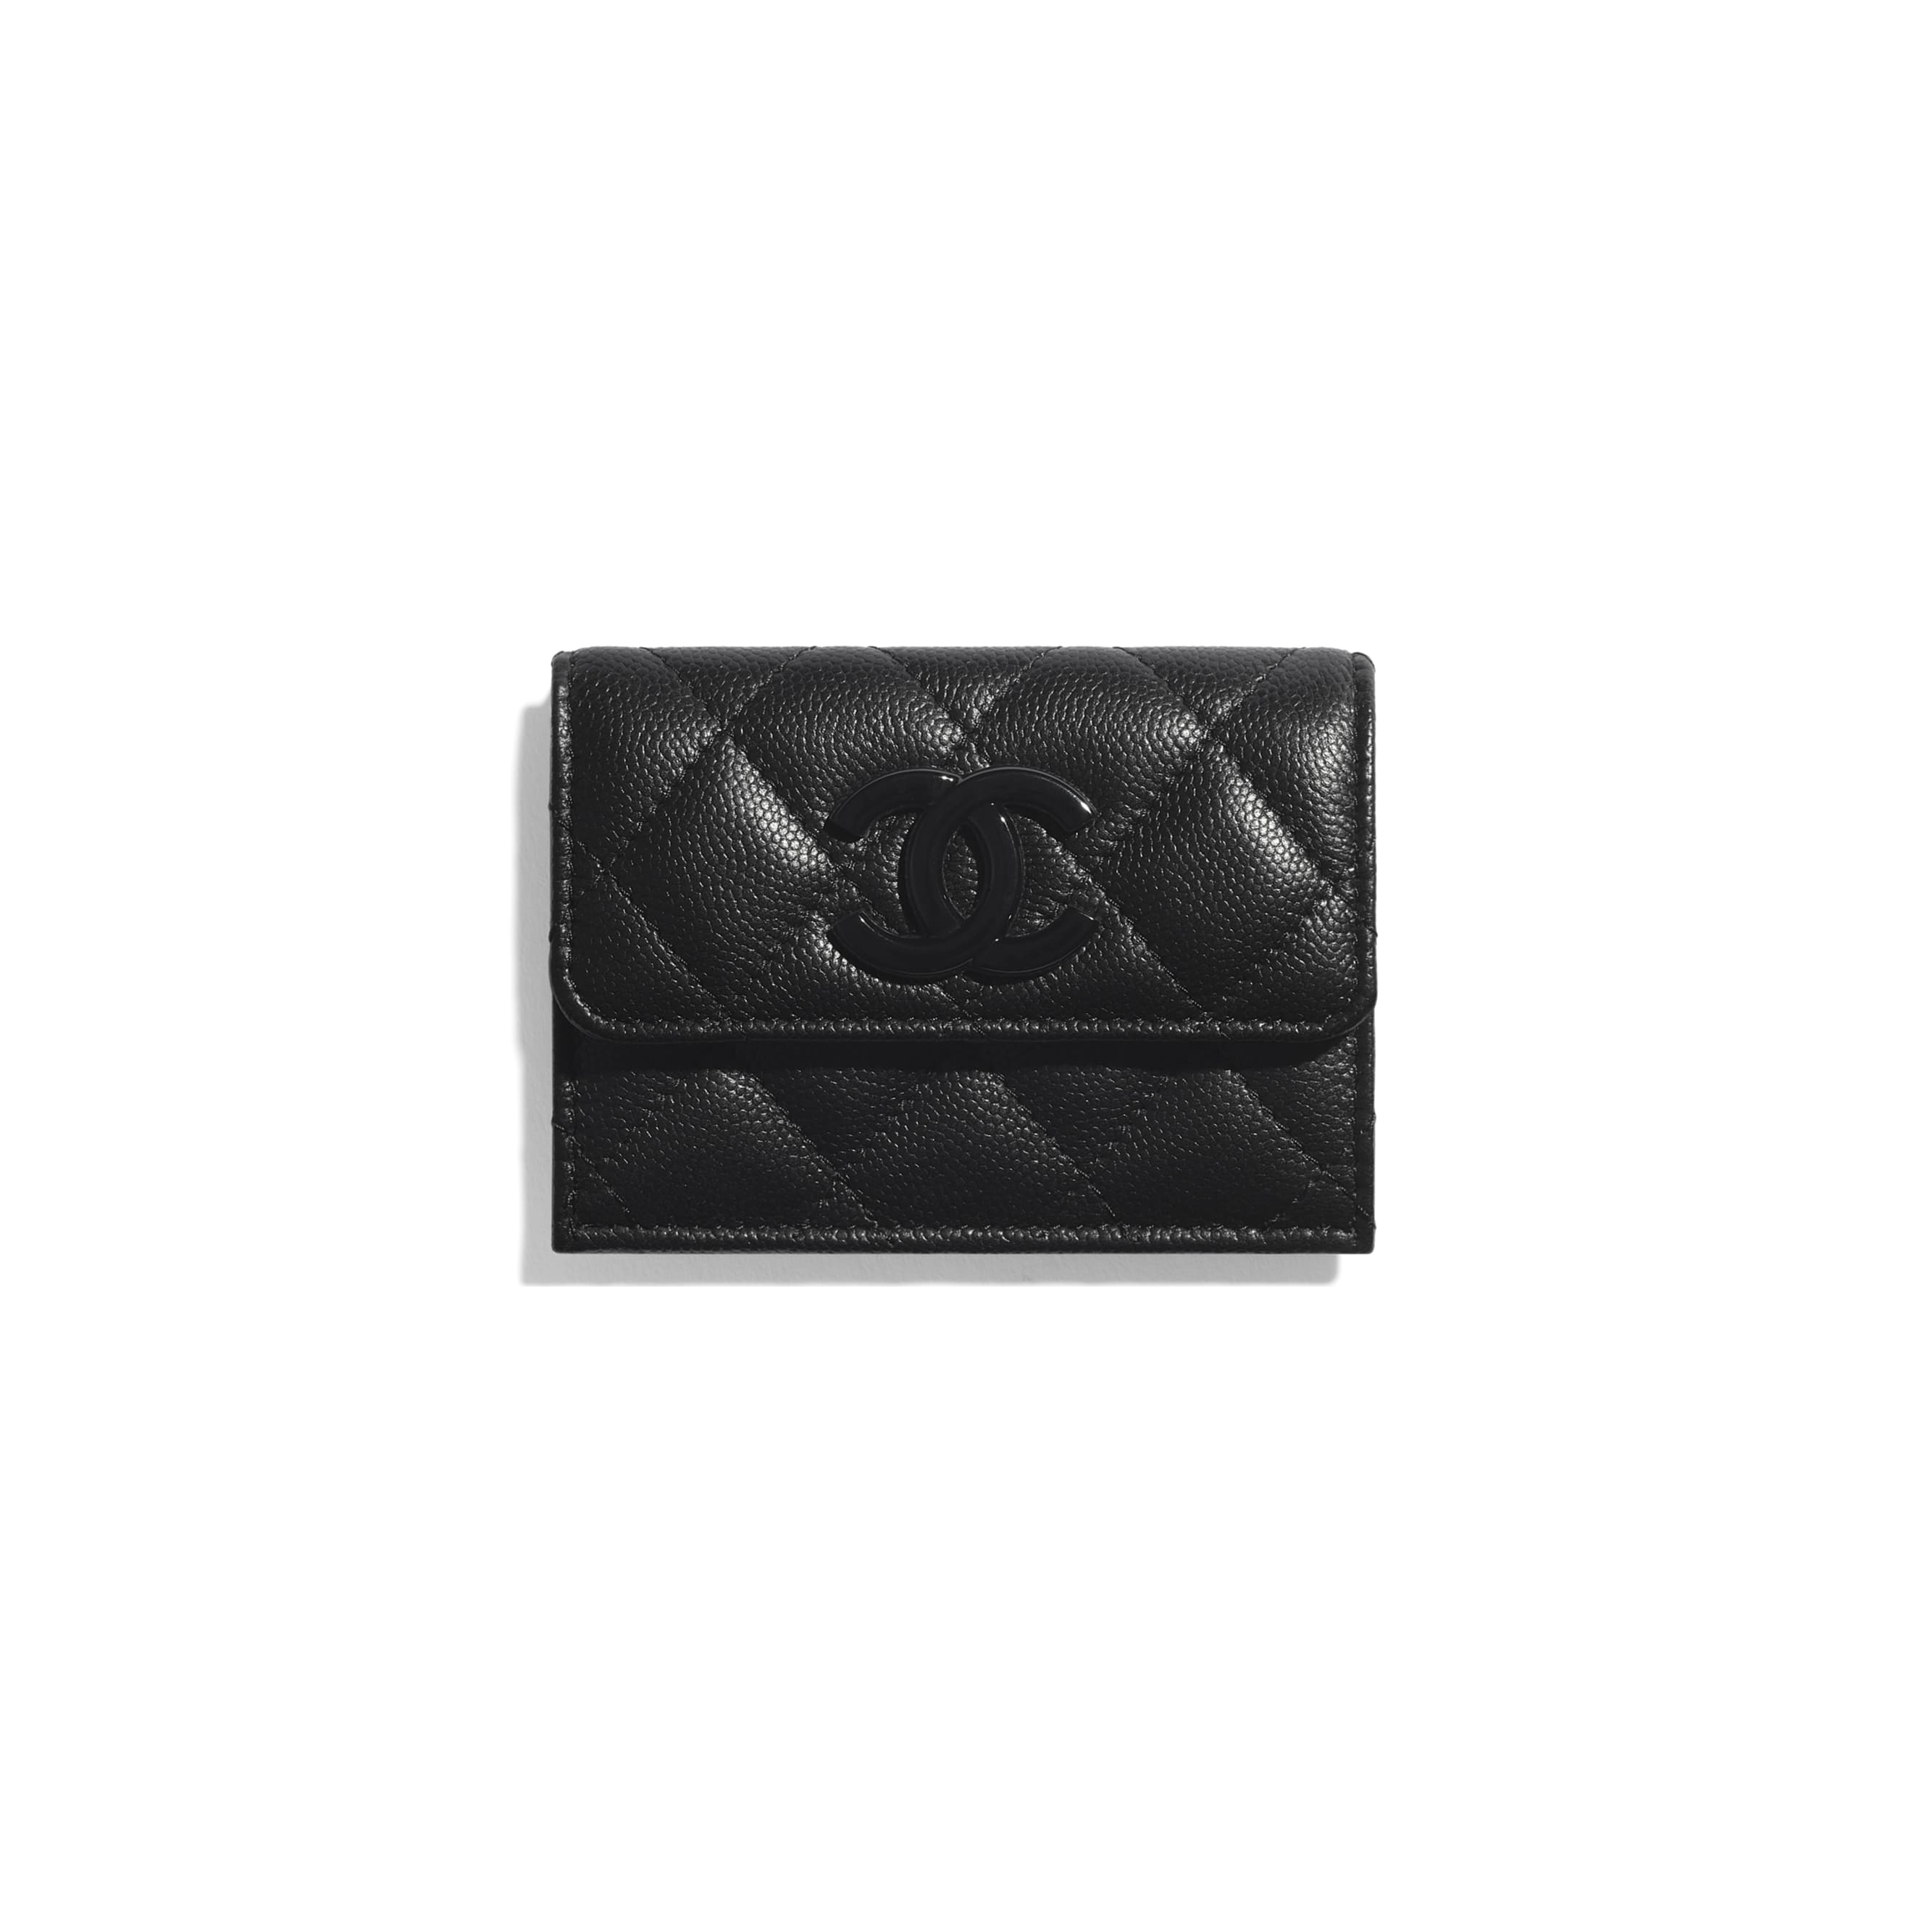 Small Flap Wallet - Black - Grained Calfskin & Lacquered Metal - CHANEL - Default view - see standard sized version